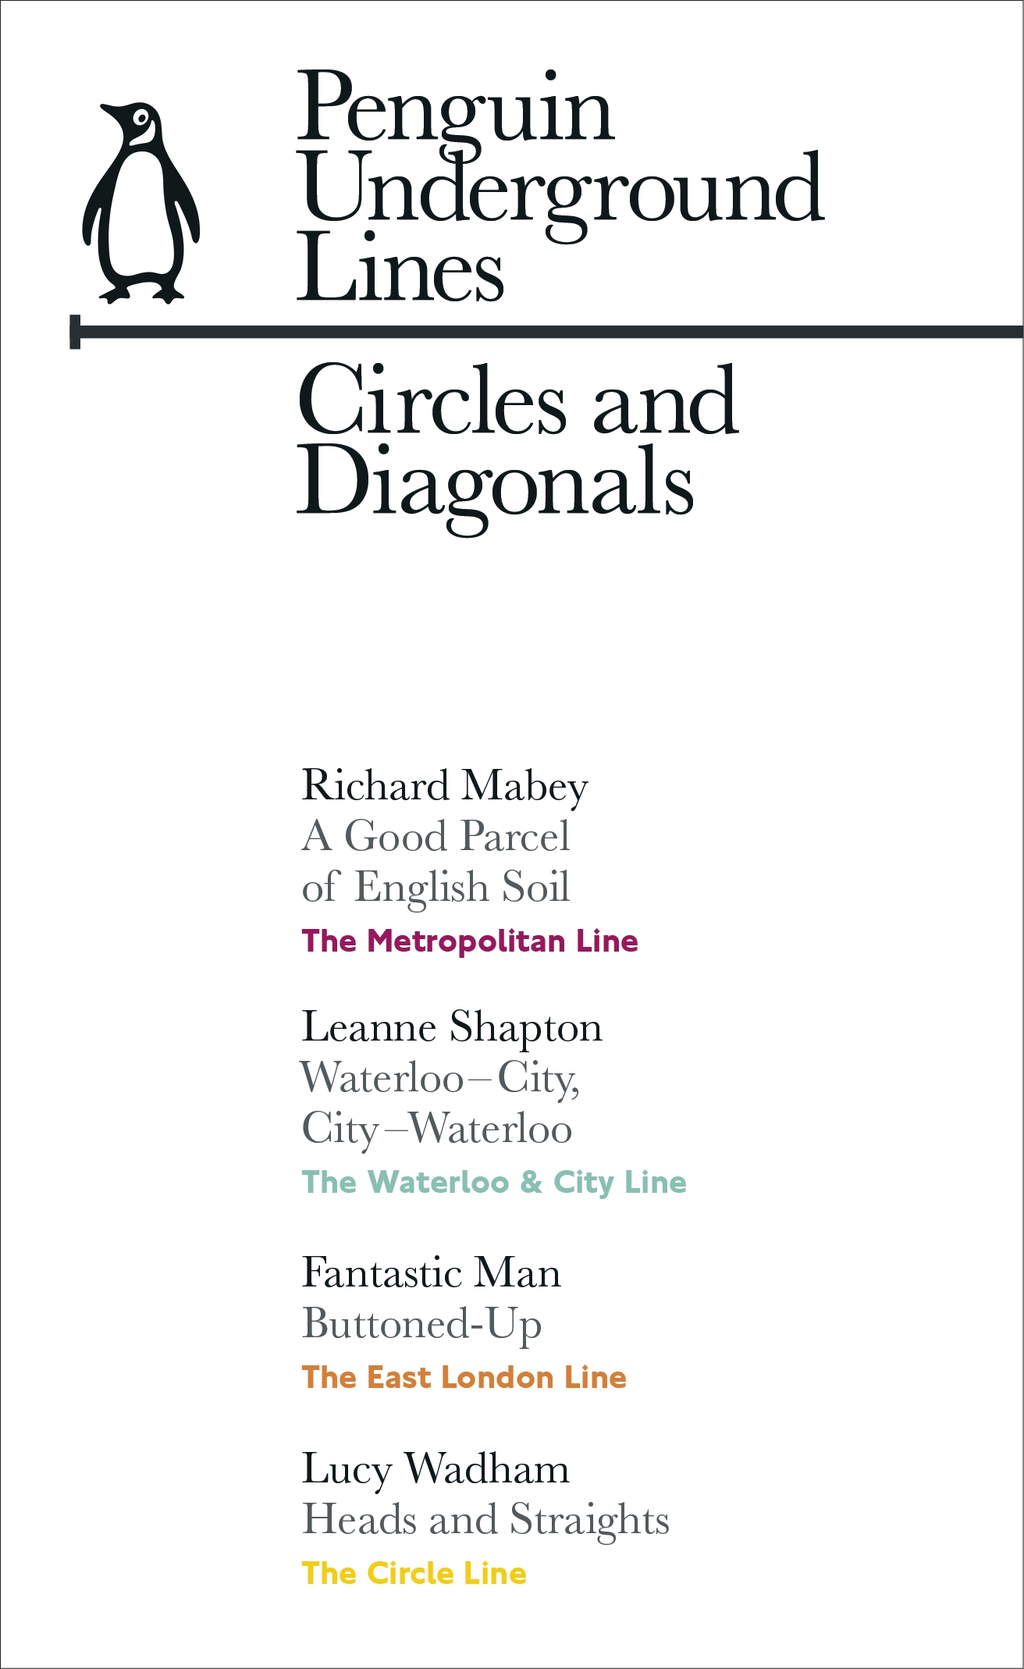 Circles and Diagonals: Penguin Underground Lines Circle,  Metropolitan,  East London Line,  Waterloo & City